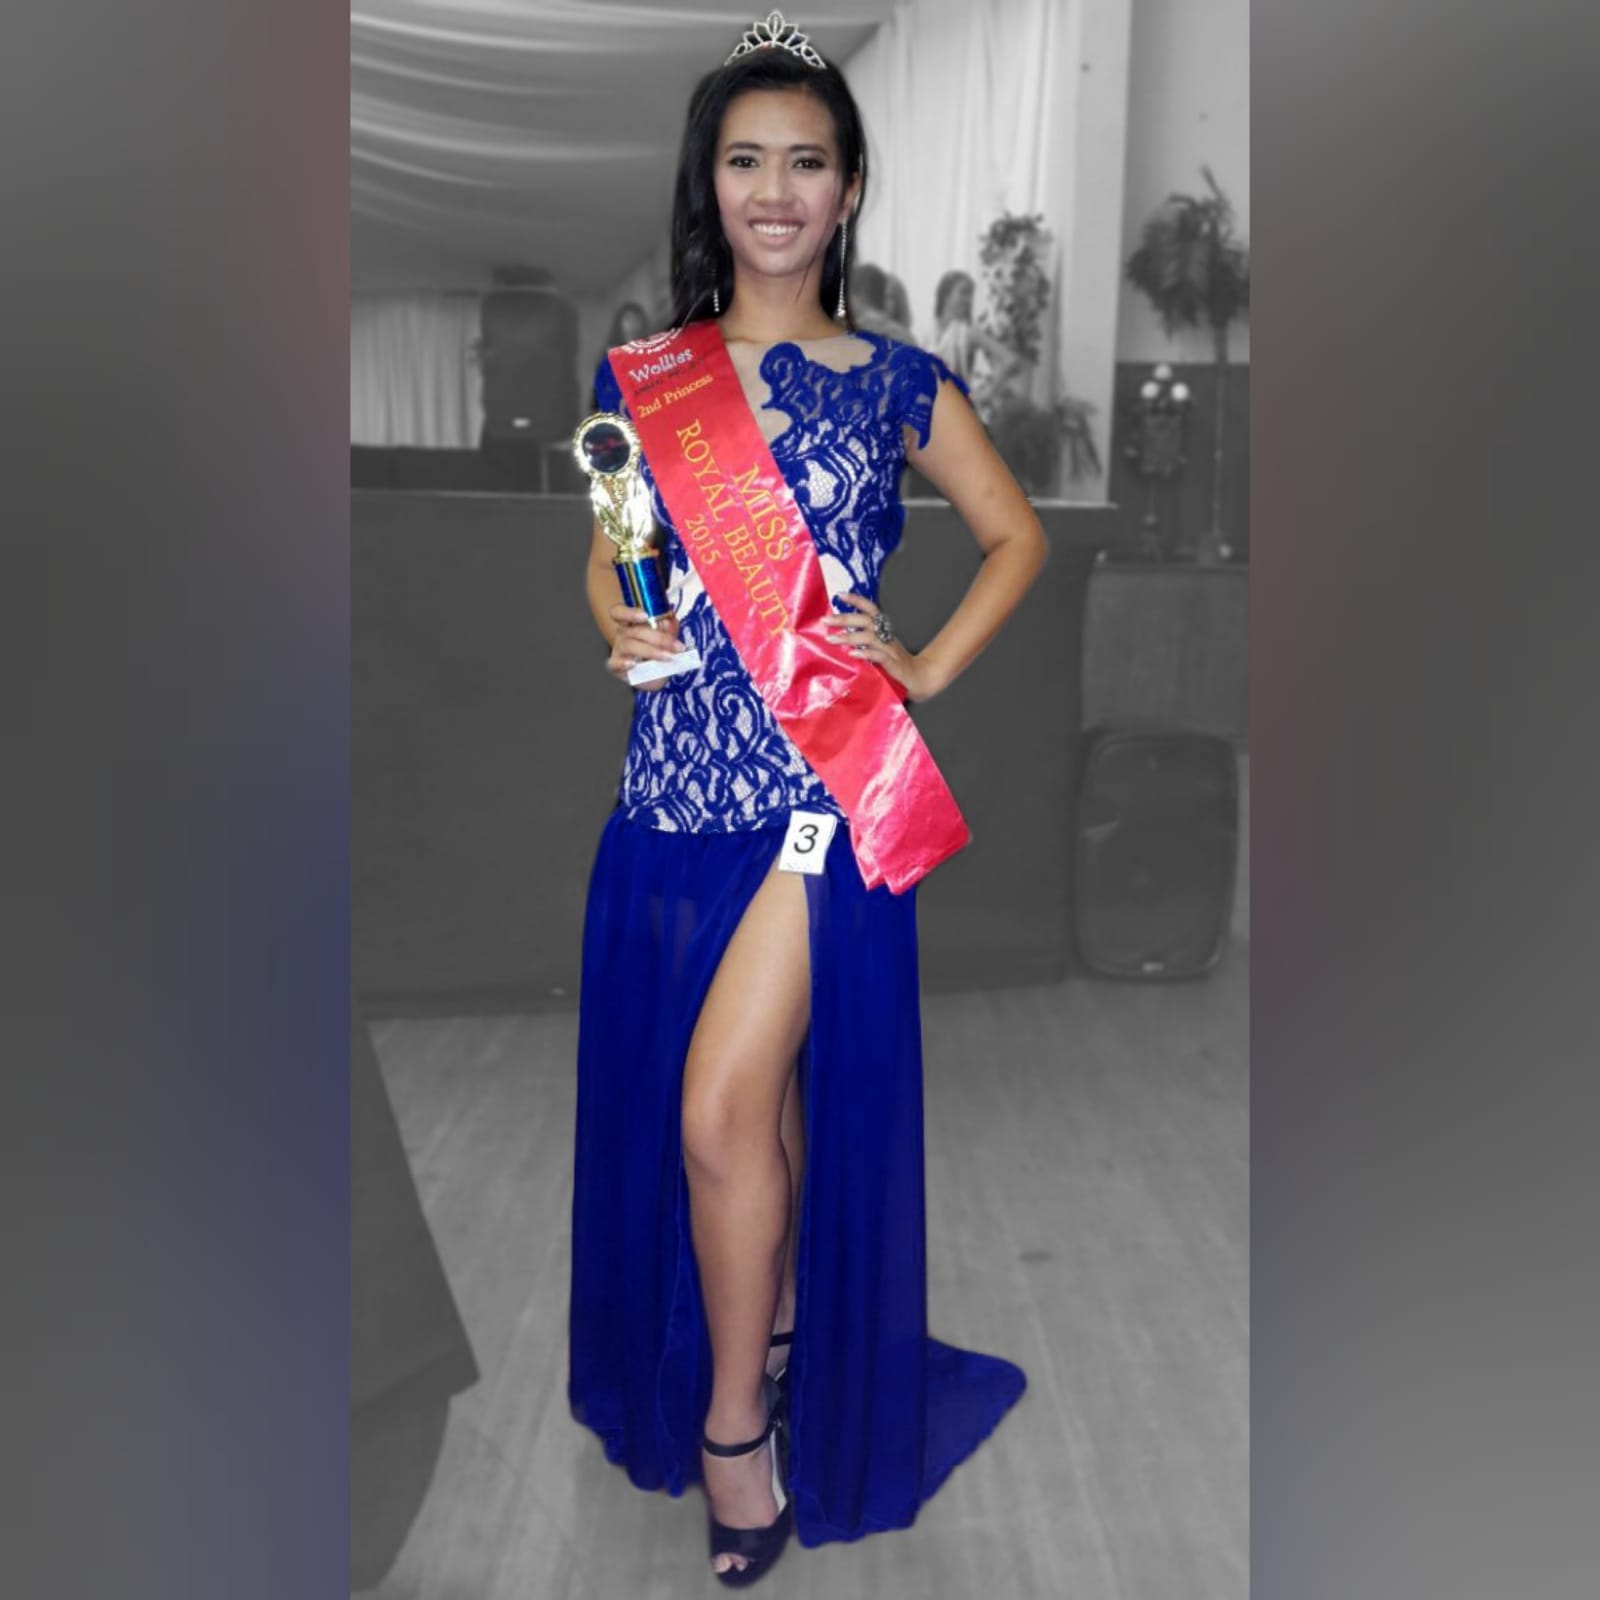 Royal blue pageant evening dress 1 royal blue pageant evening dress, with a lace bodice lined in nude, with a sheer gathered chiffon bottom with high slit, and a rounded open back.